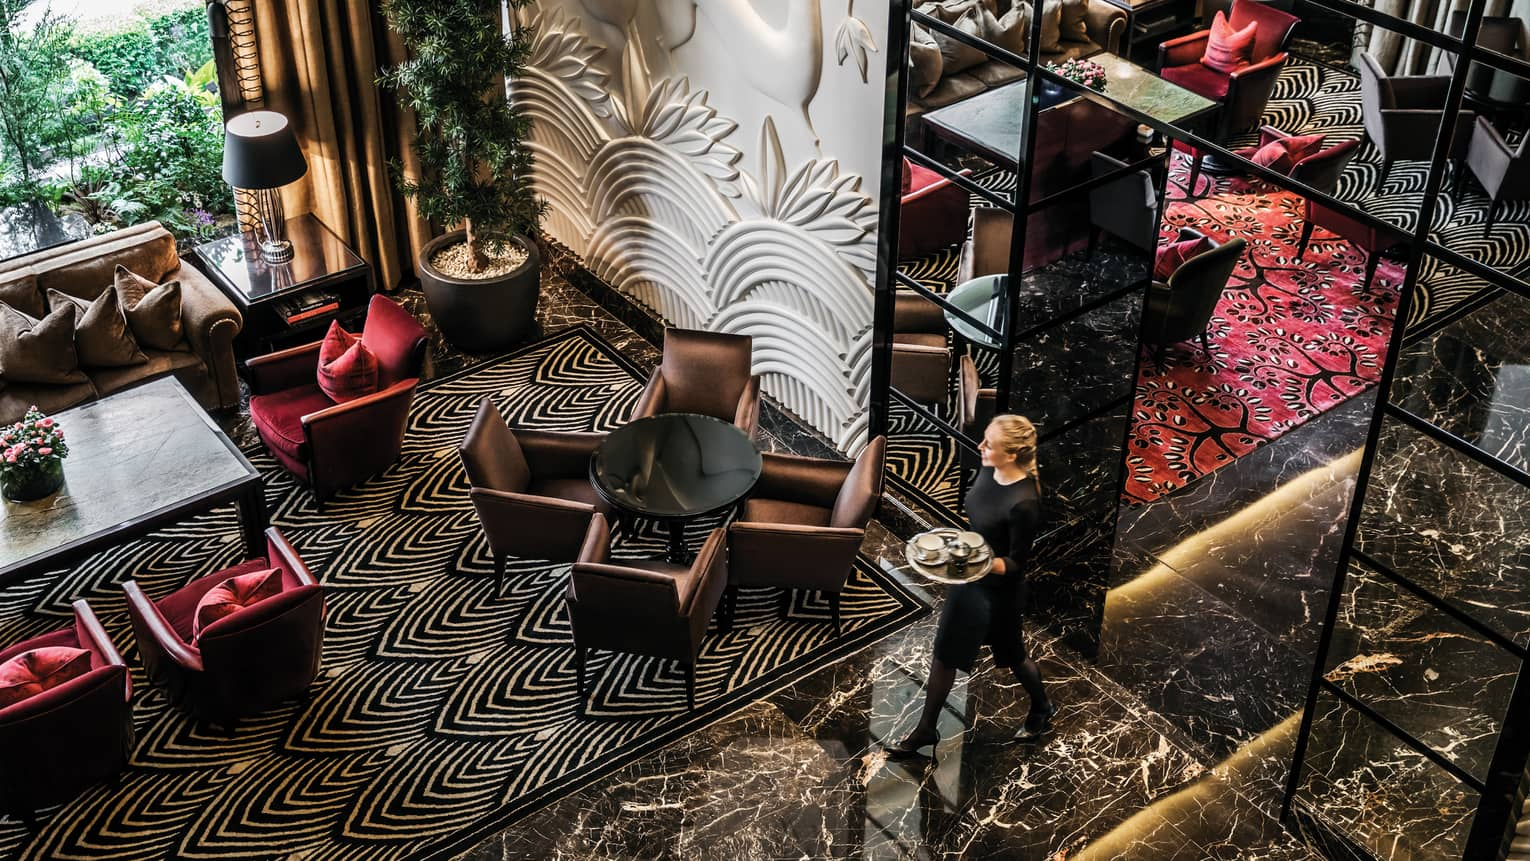 Aerial view of server carrying tray through Amaranto Lounge, black marble floors, white accent walls